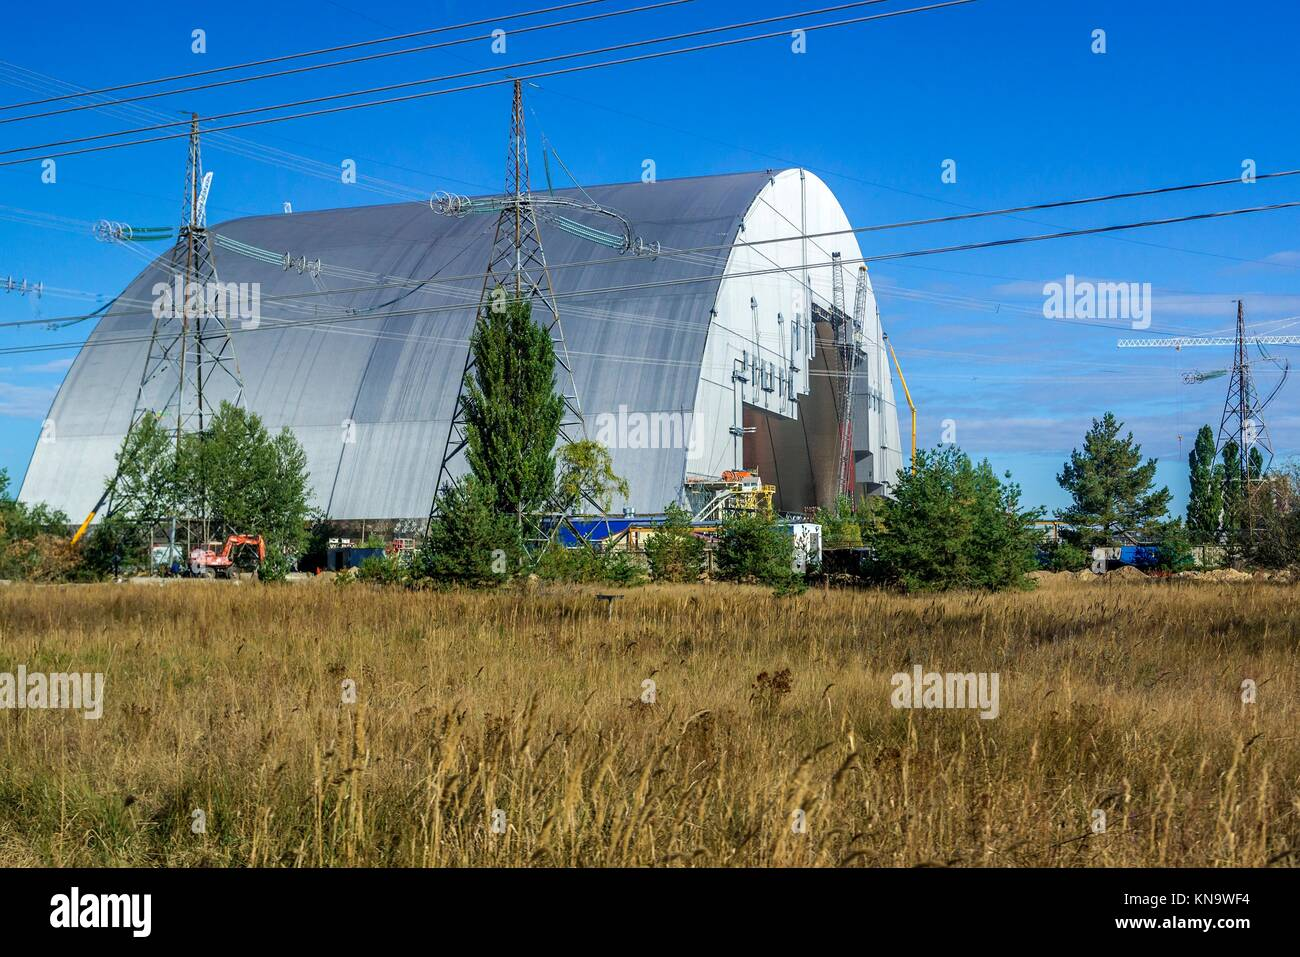 Chernobyl New Safe Confinement for No 4 unit of Chernobyl Nuclear Power Plant in Zone of Alienation, Ukraine. - Stock Image